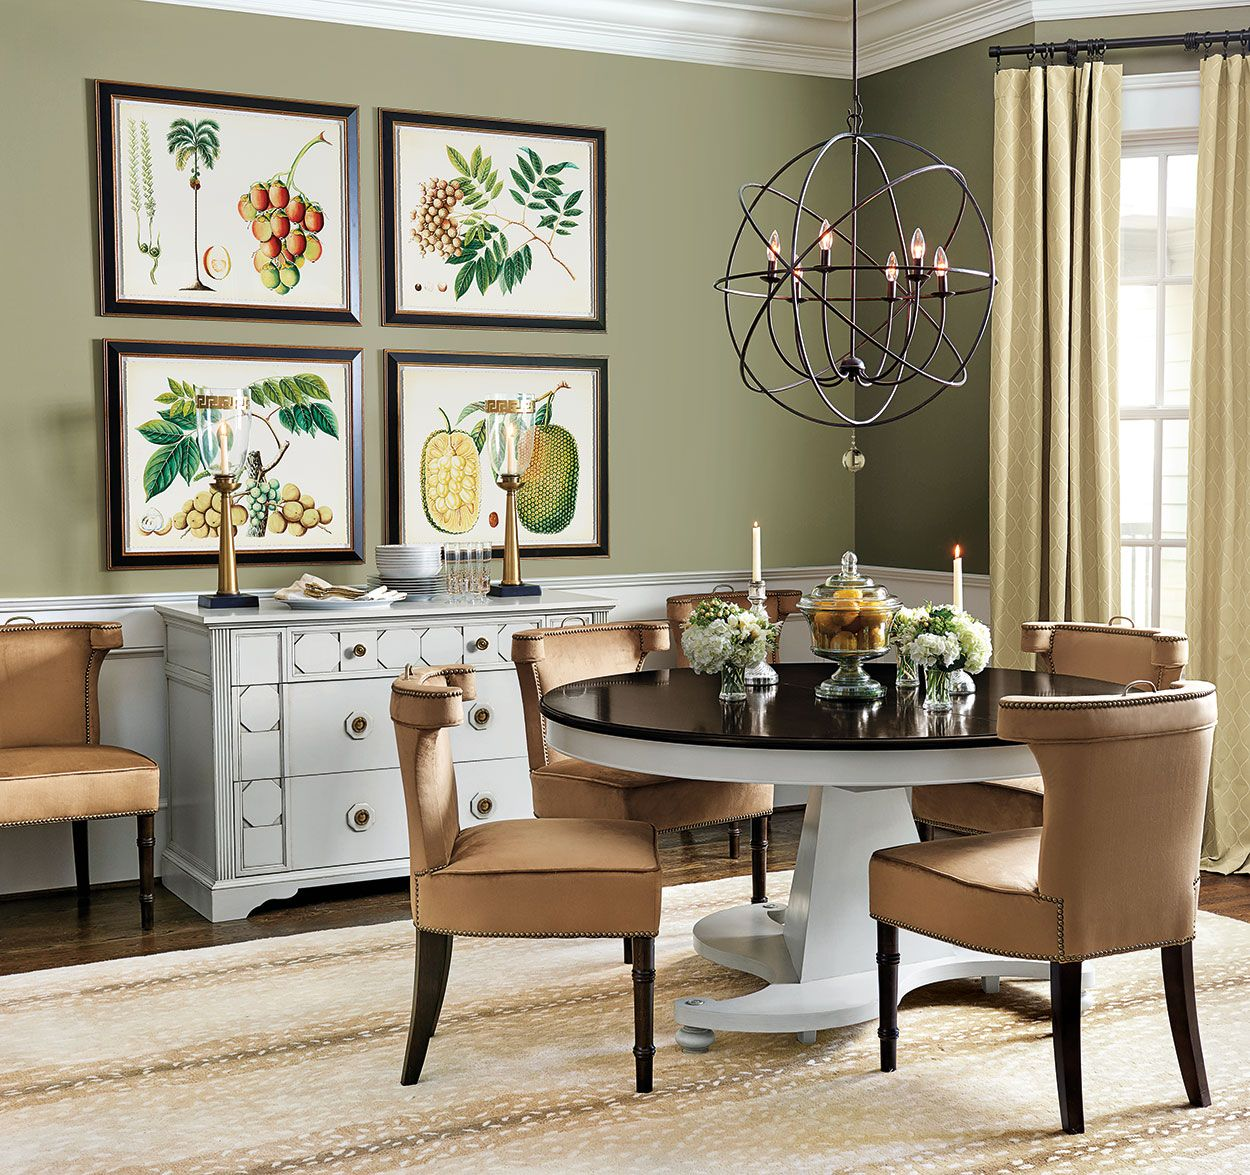 Dining Room Color Ideas: Dining Room Decorating Ideas